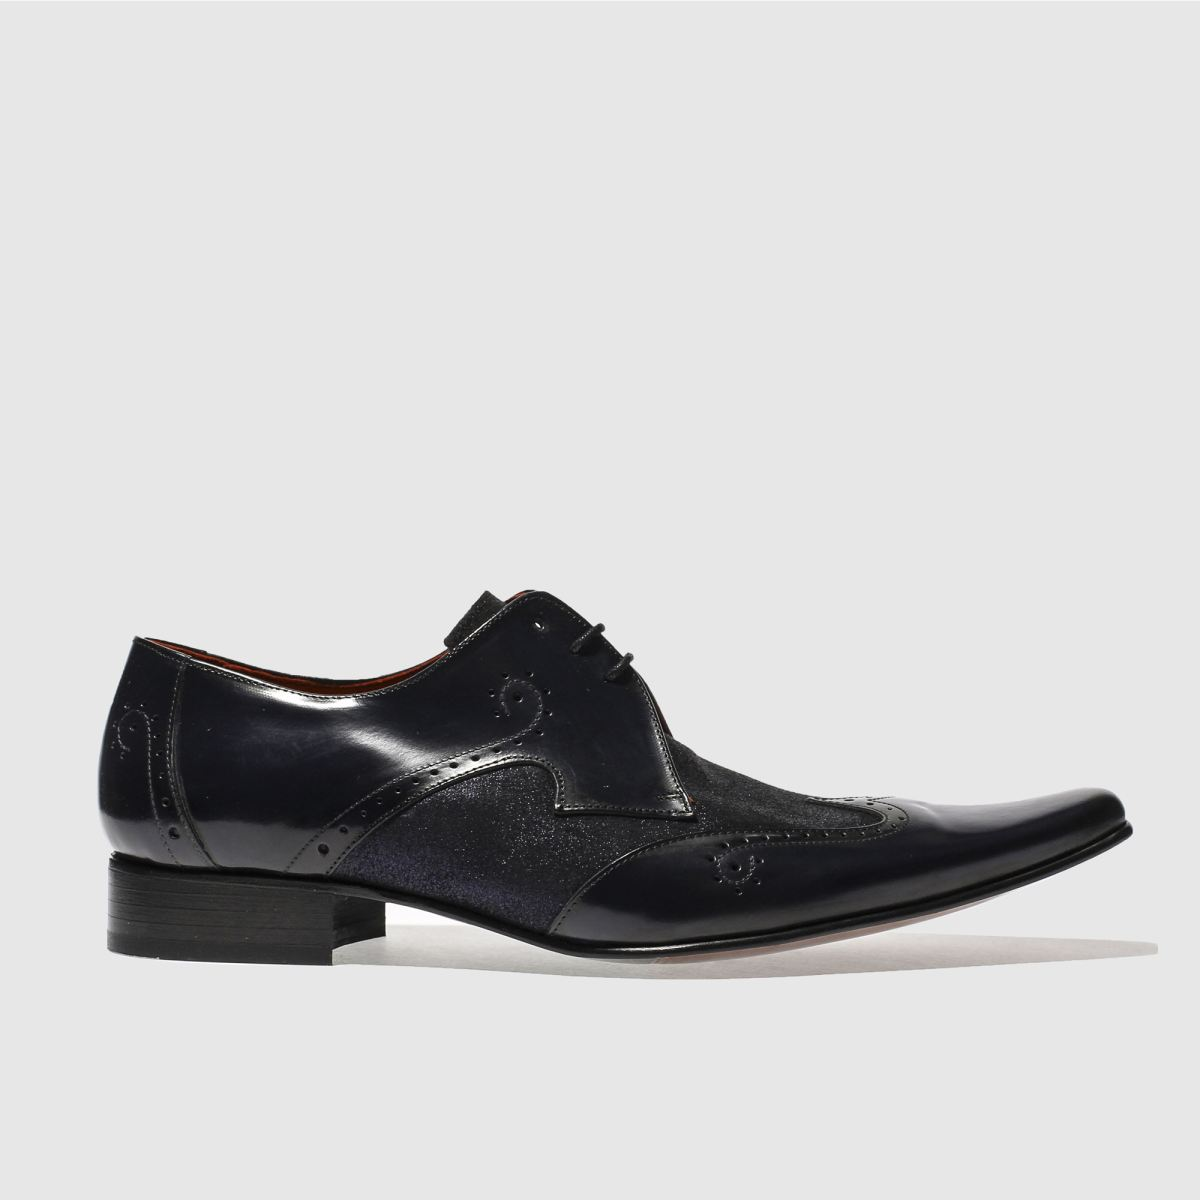 jeffery west navy pino wing cap shoes